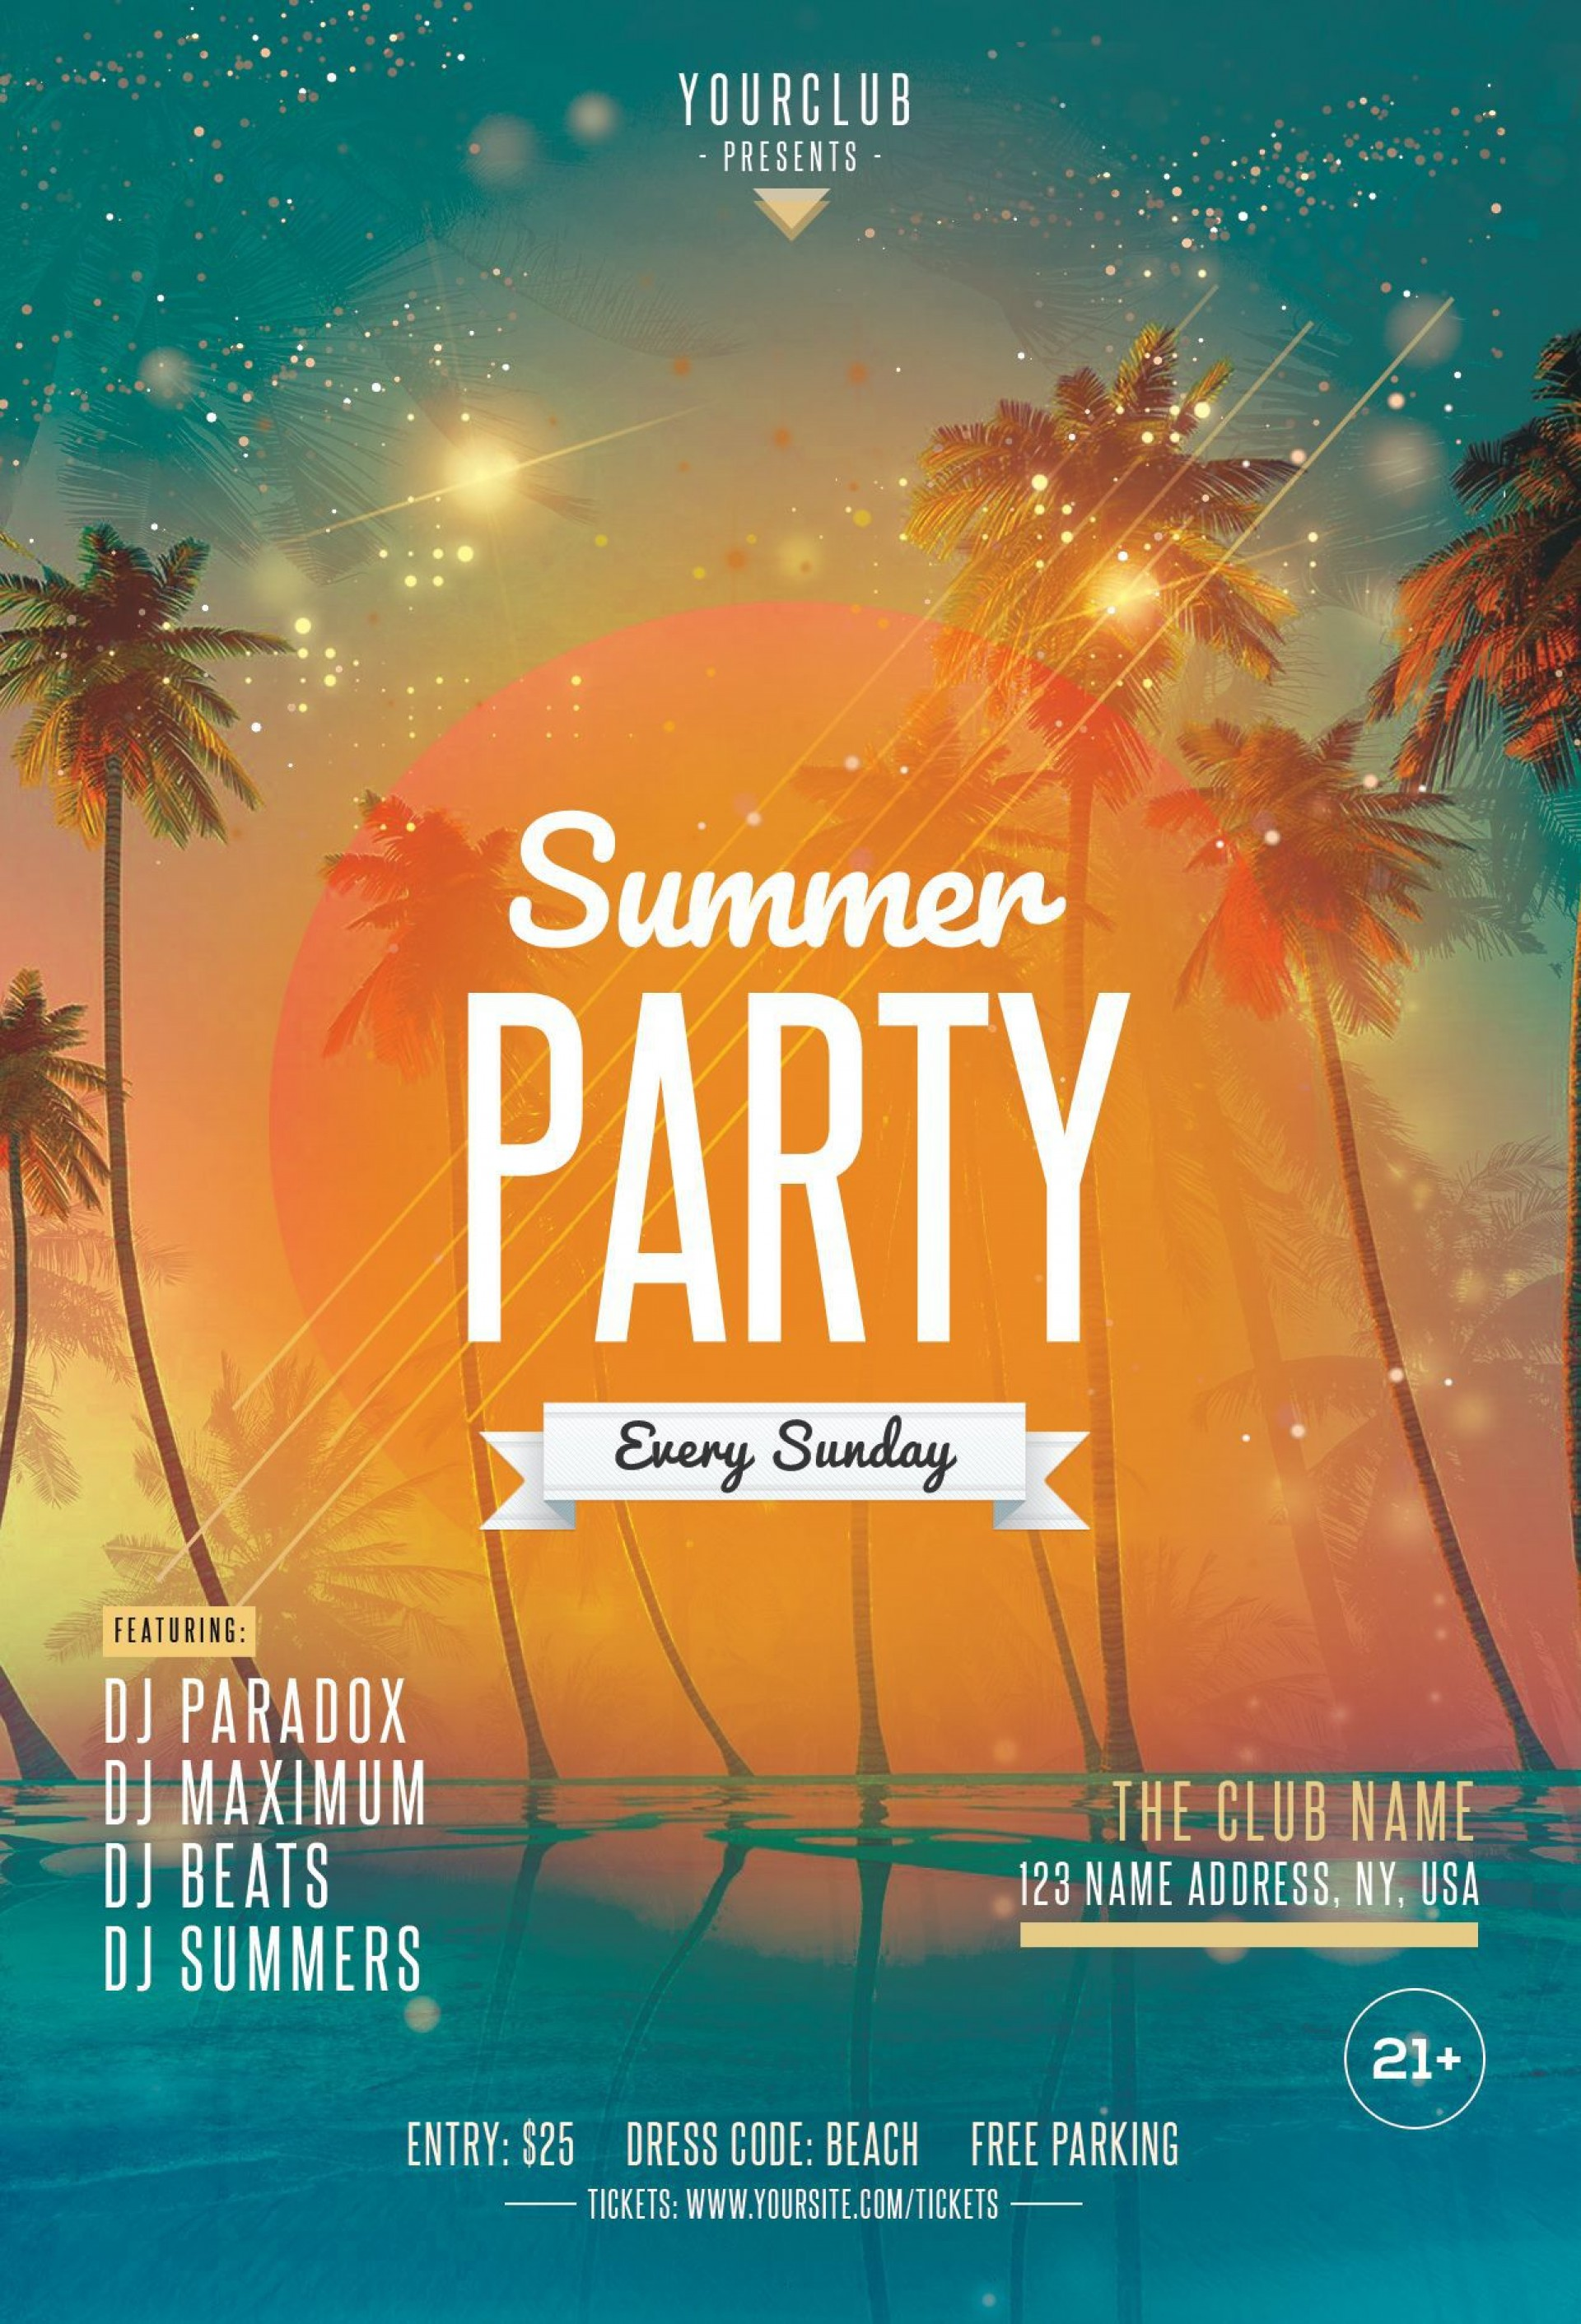 000 Surprising Free Party Flyer Psd Template Download High Resolution  - Neon Glow1920